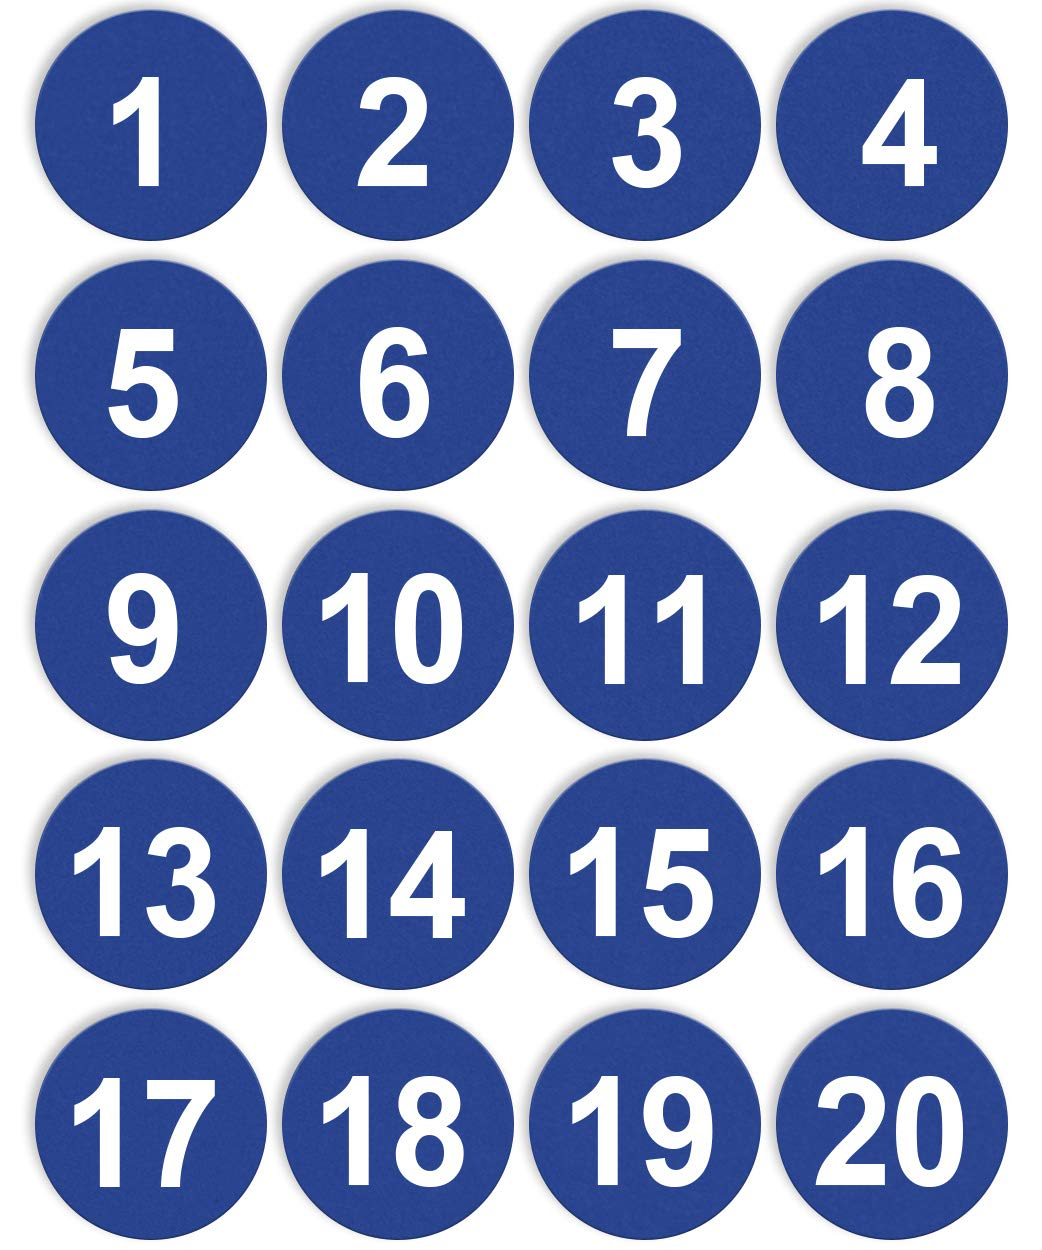 Amazon com dealzepic number stickers 2 inch blue 1 to 20 round self adhesive stickers 2 removable numbered labels office products